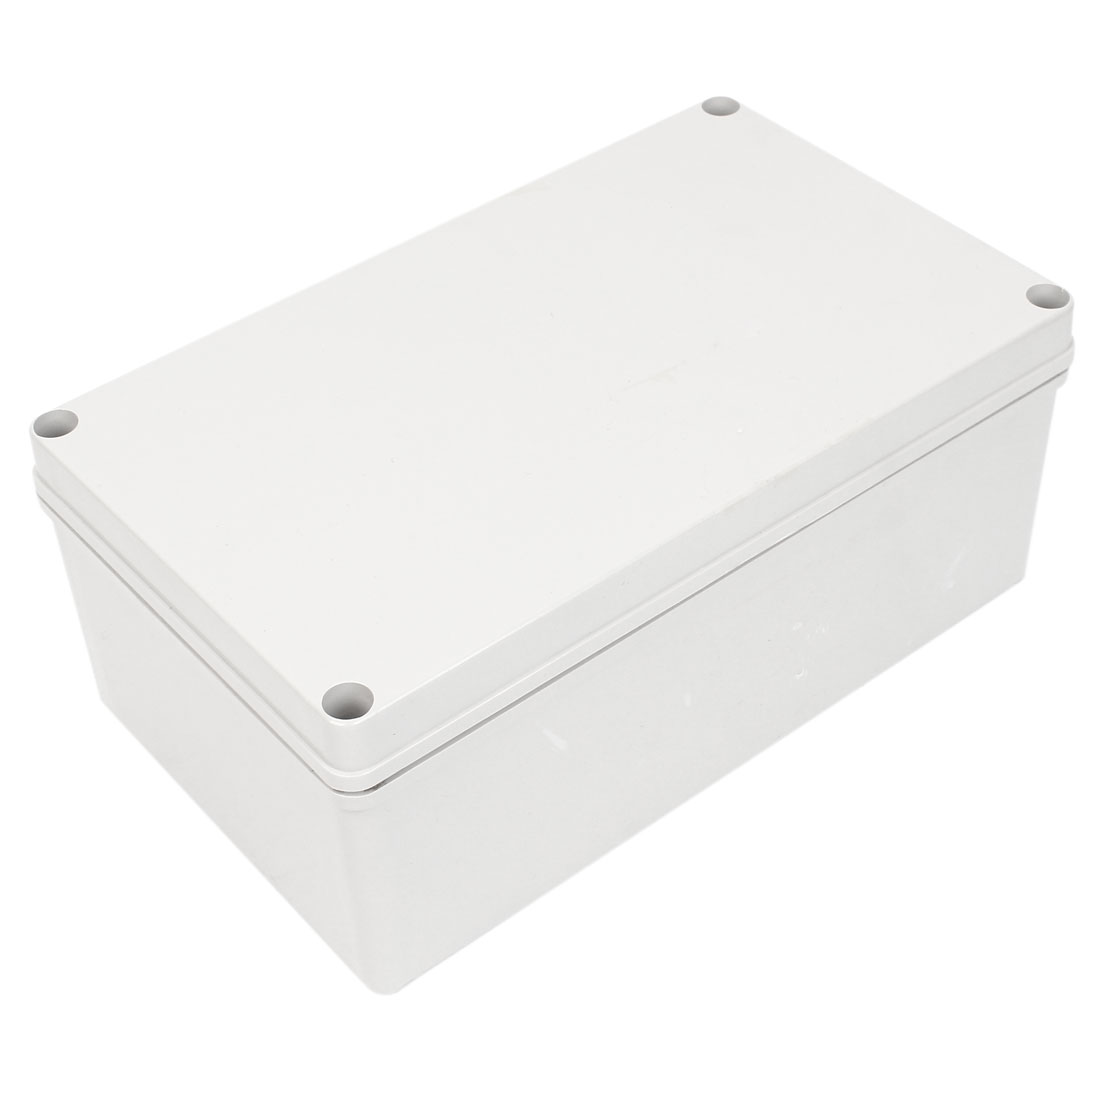 Rectangular Waterproof Plastic DIY Junction Box Case 245mmx145mmx100mm